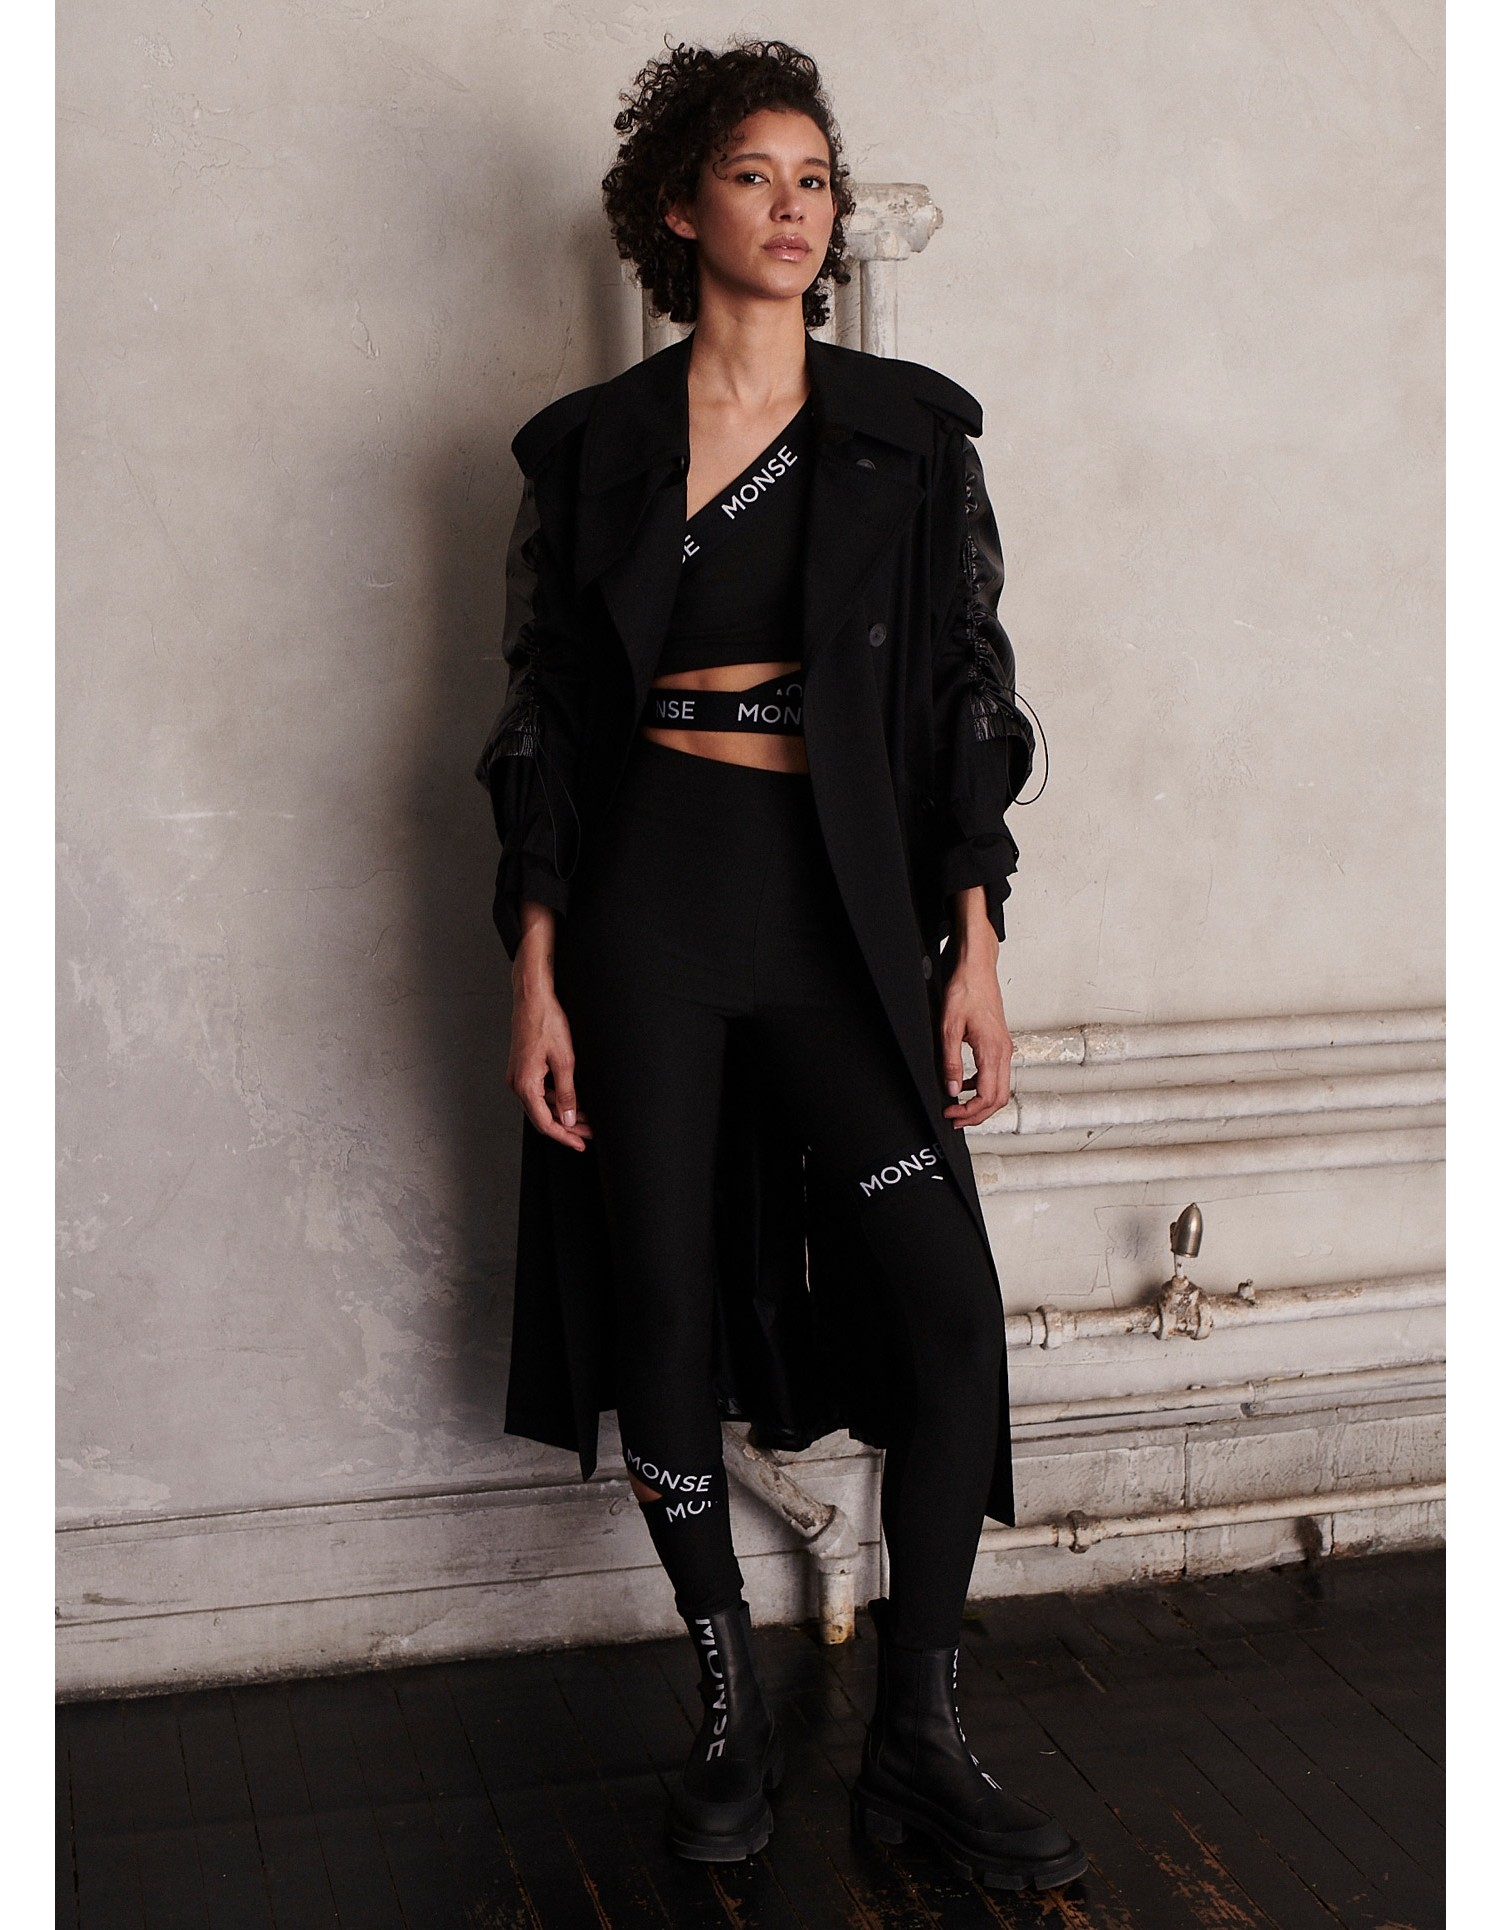 MONSE Drawstring Trench Coat in Black on Model Front Side View